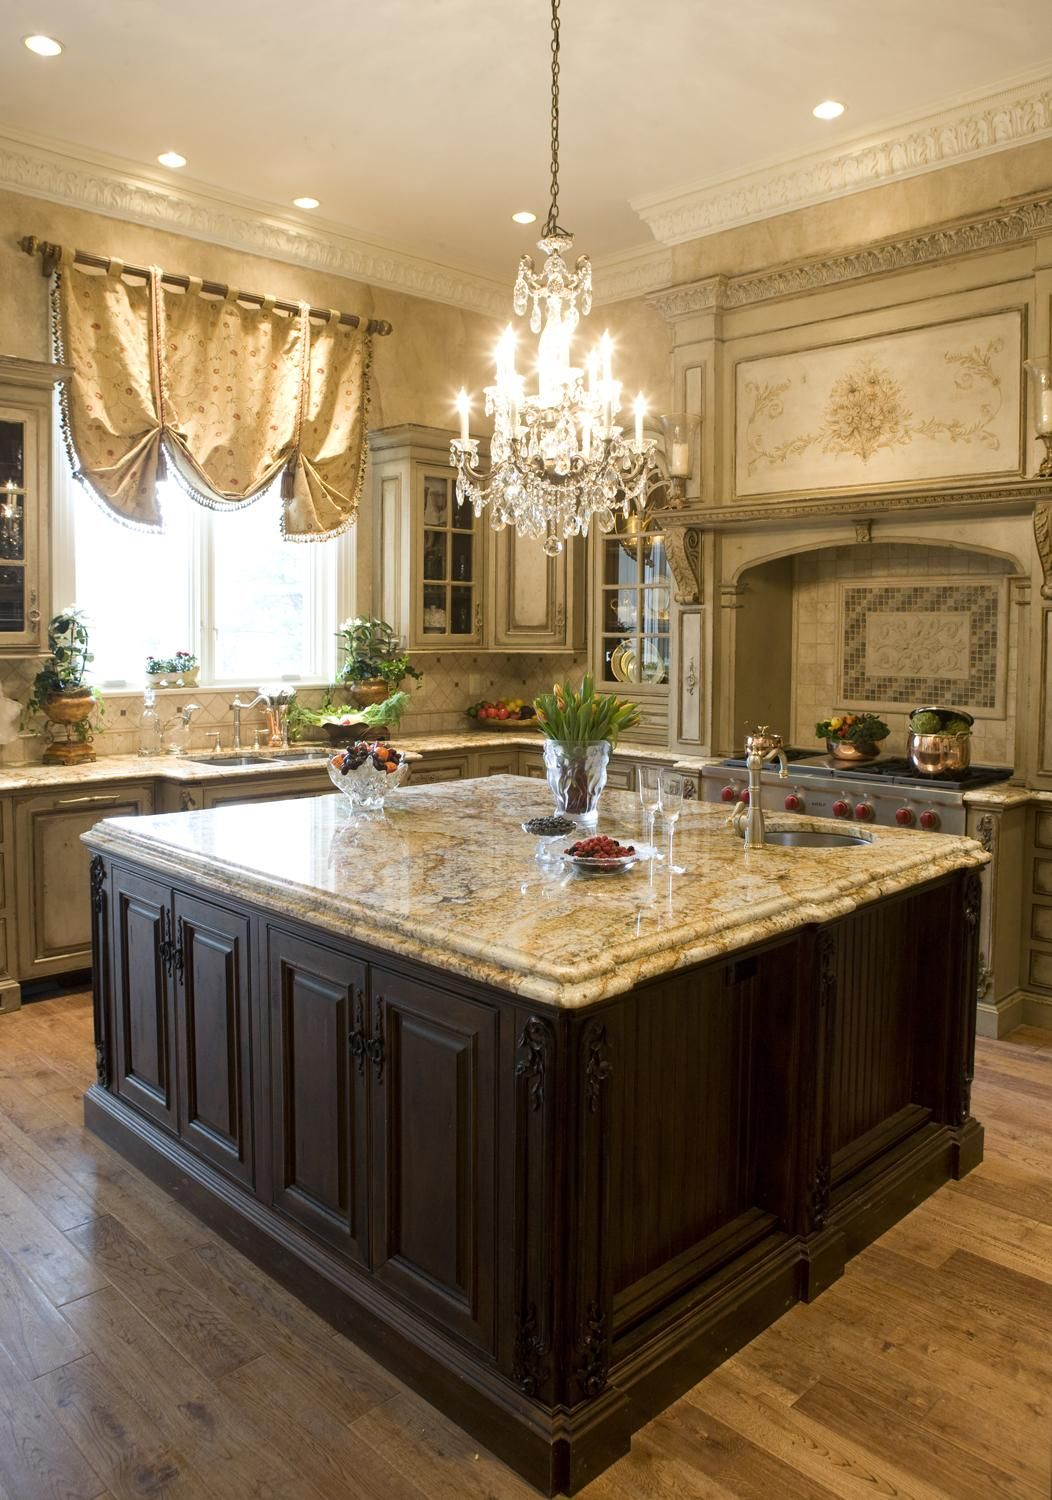 This #kitchen Is An Elegant Style For Surewe Love That The Adorable Kitchen Island Counter Decorating Design